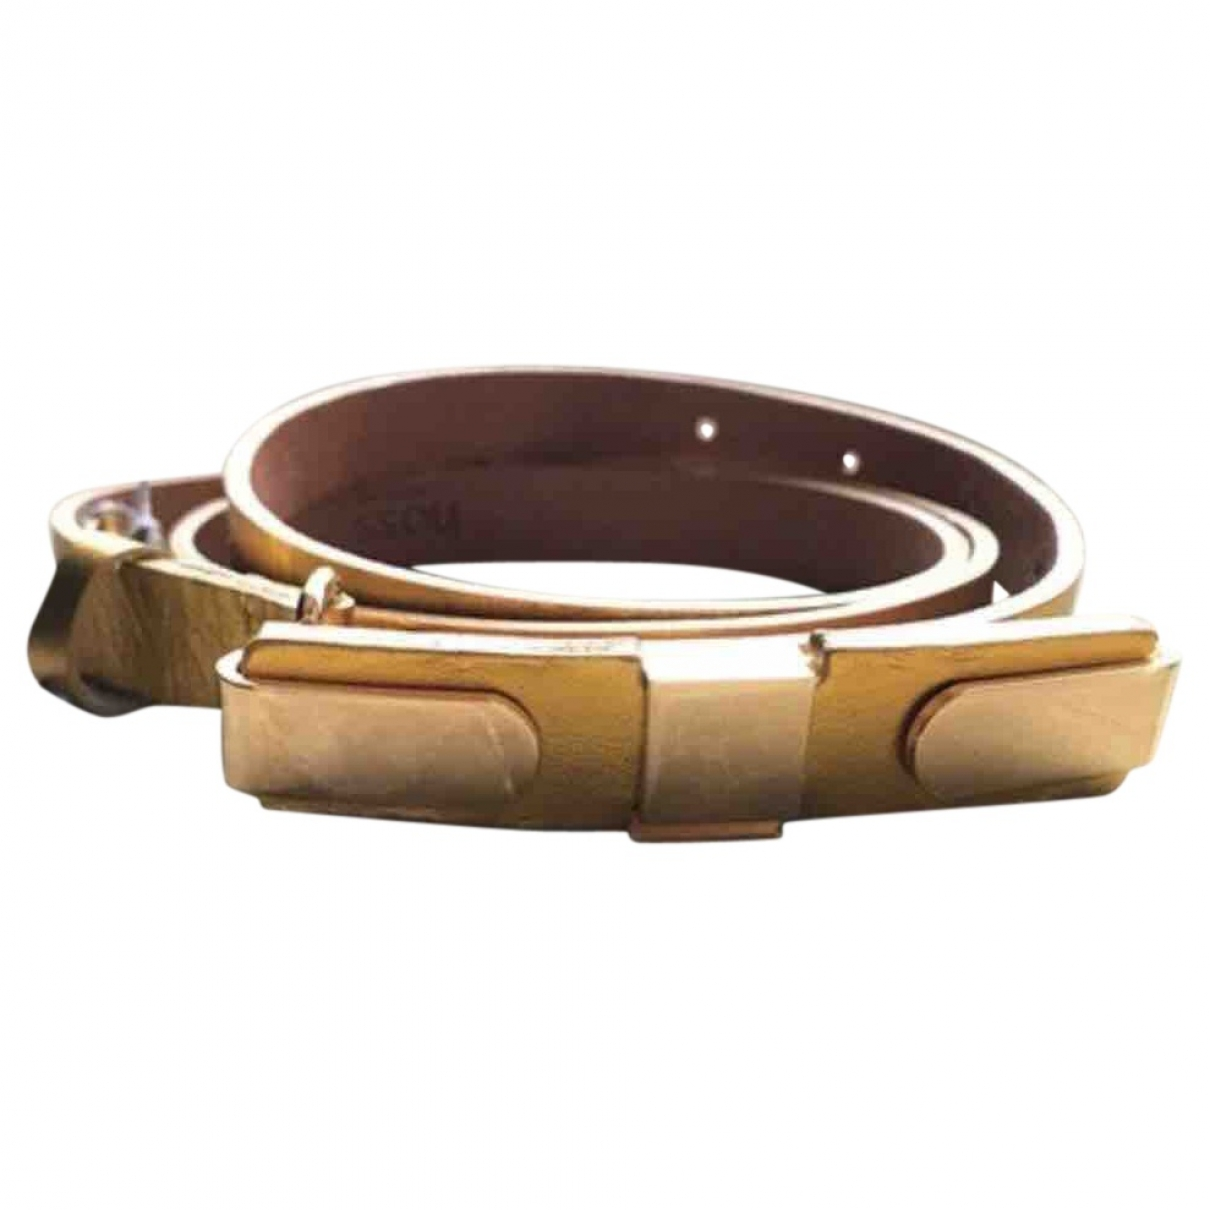 Hoss Intropia \N Gold Leather belt for Women M International